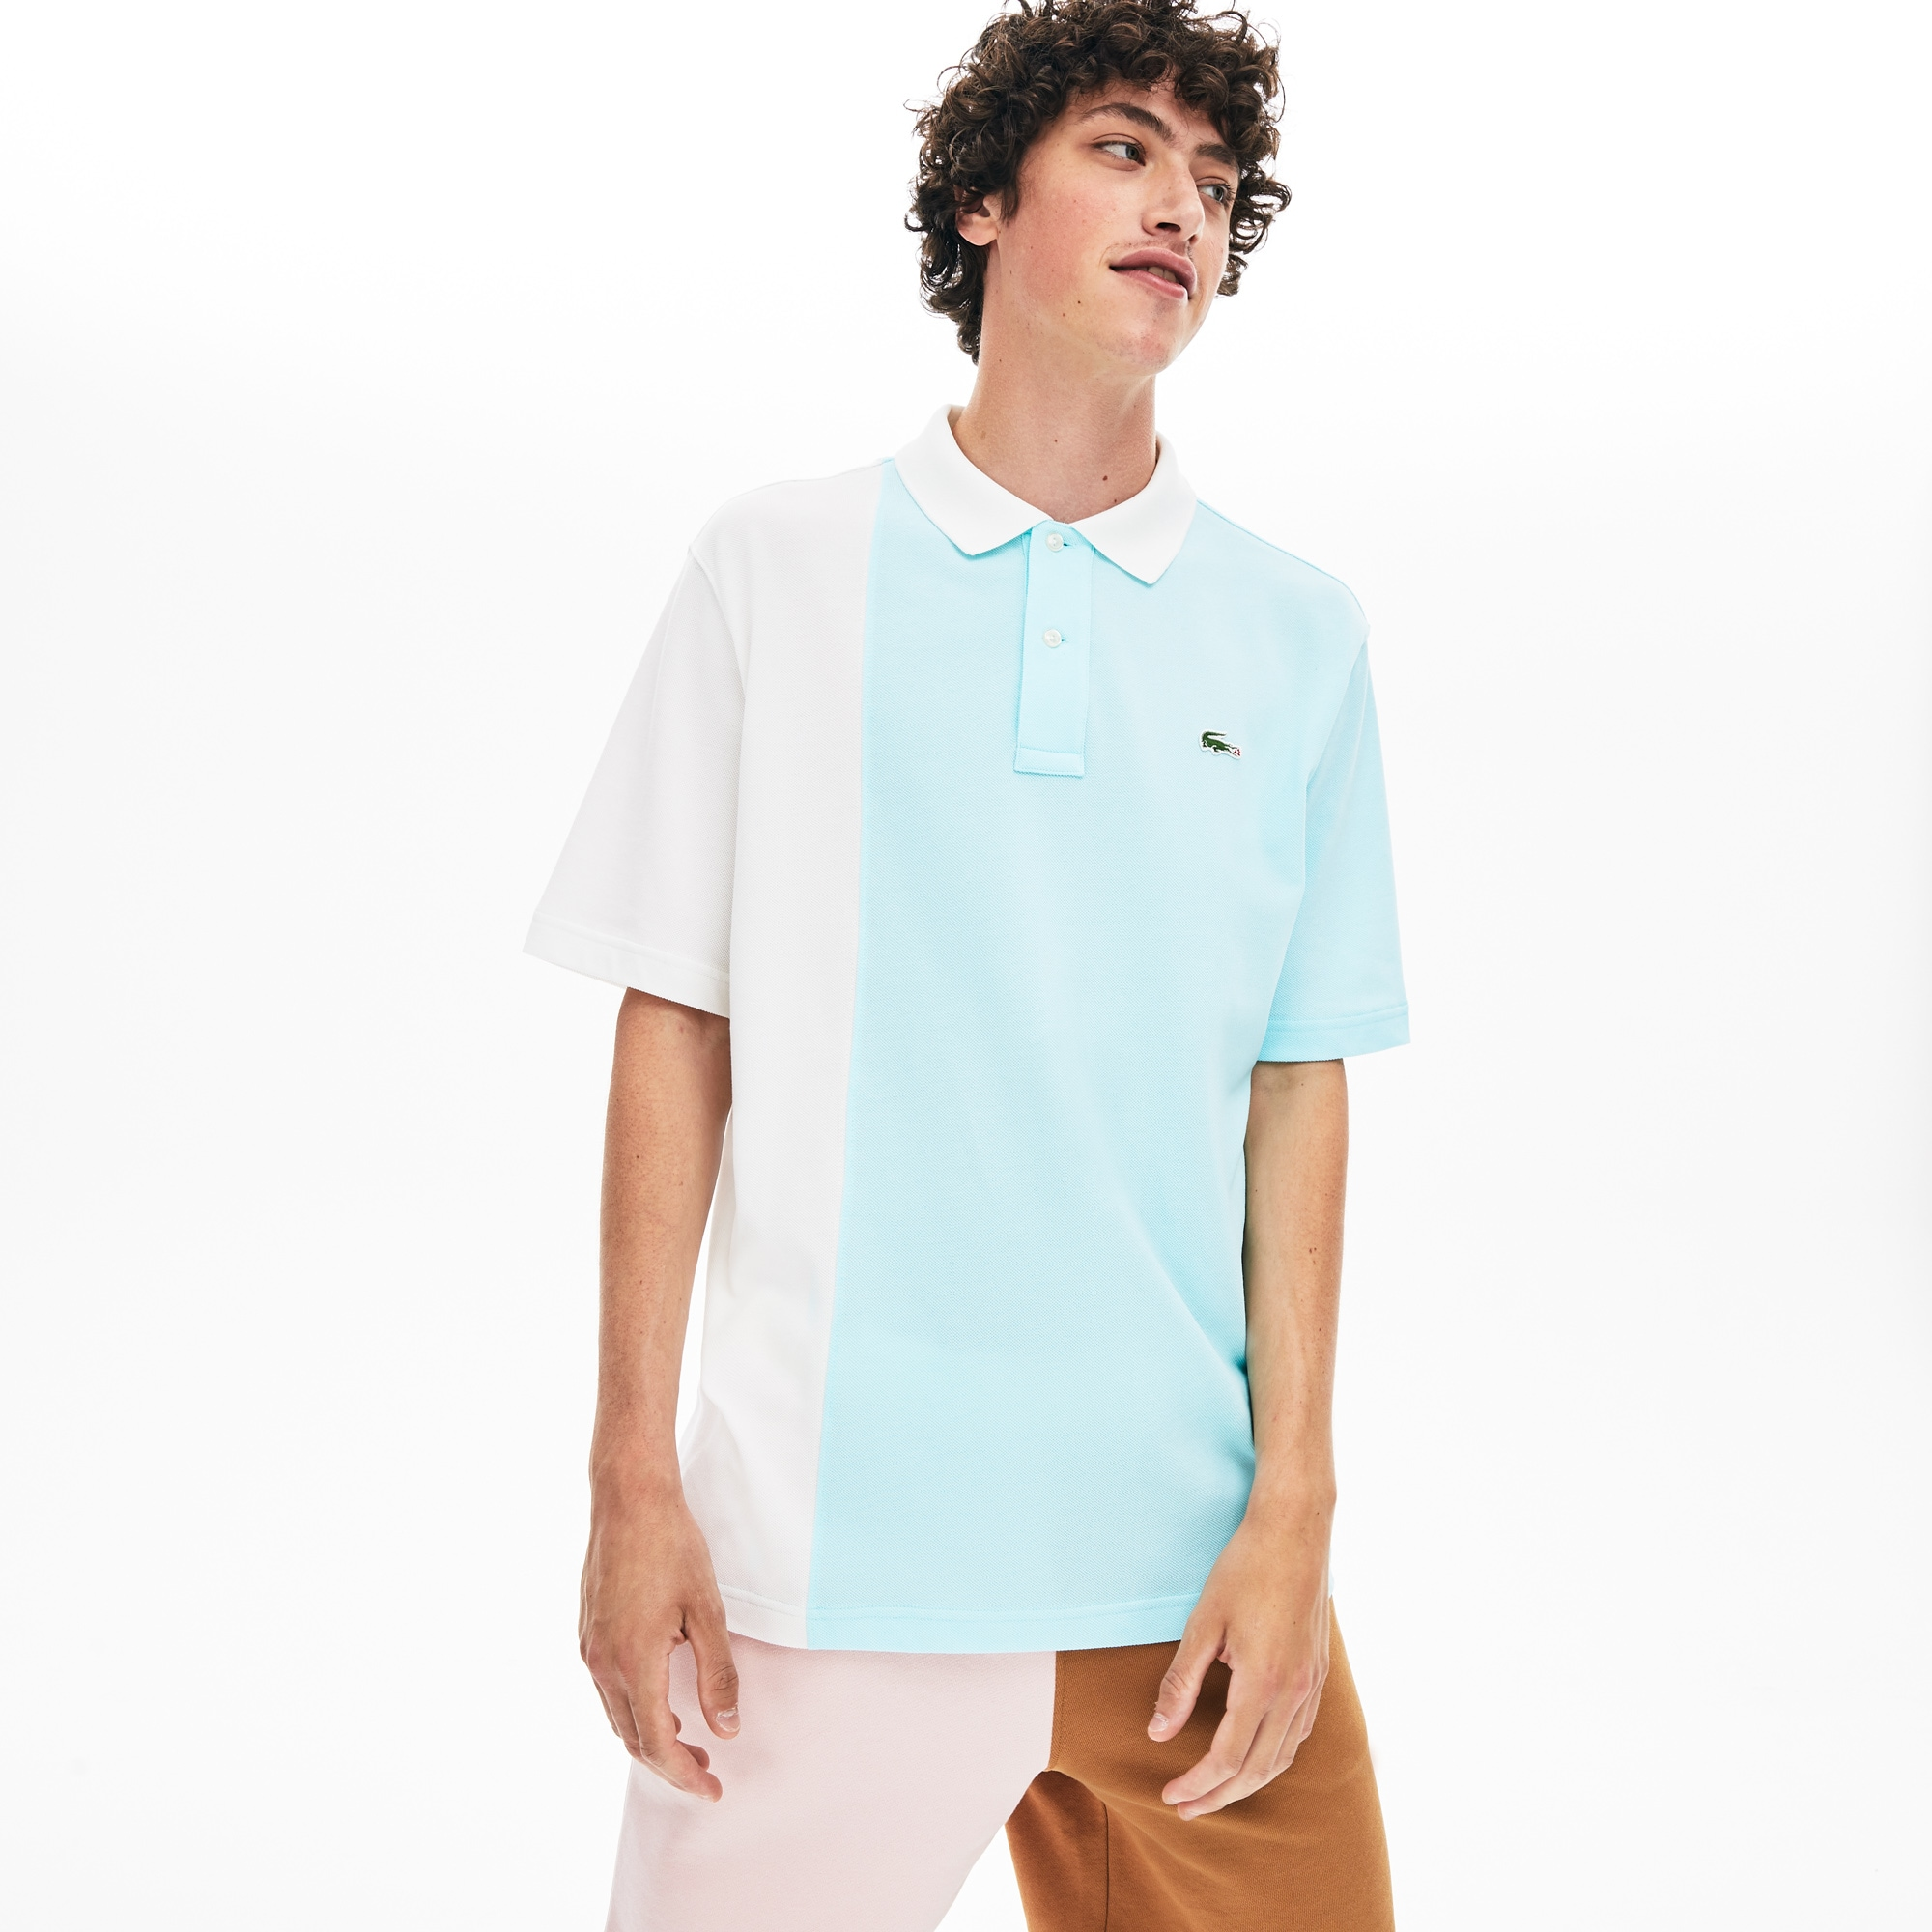 Unisex Lacoste LIVE x GOLF le FLEUR Loose Fit Colourblock Piqué Polo Shirt